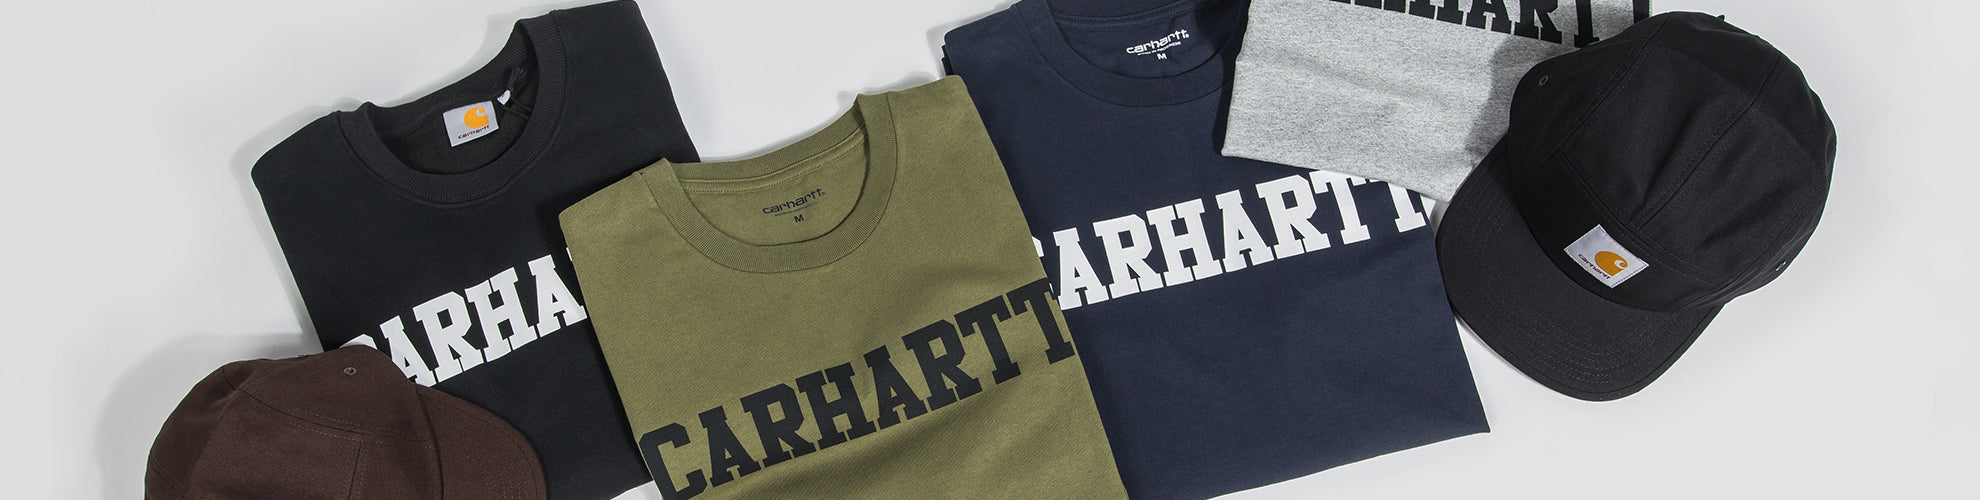 Carhartt WIP at CROSSOVER